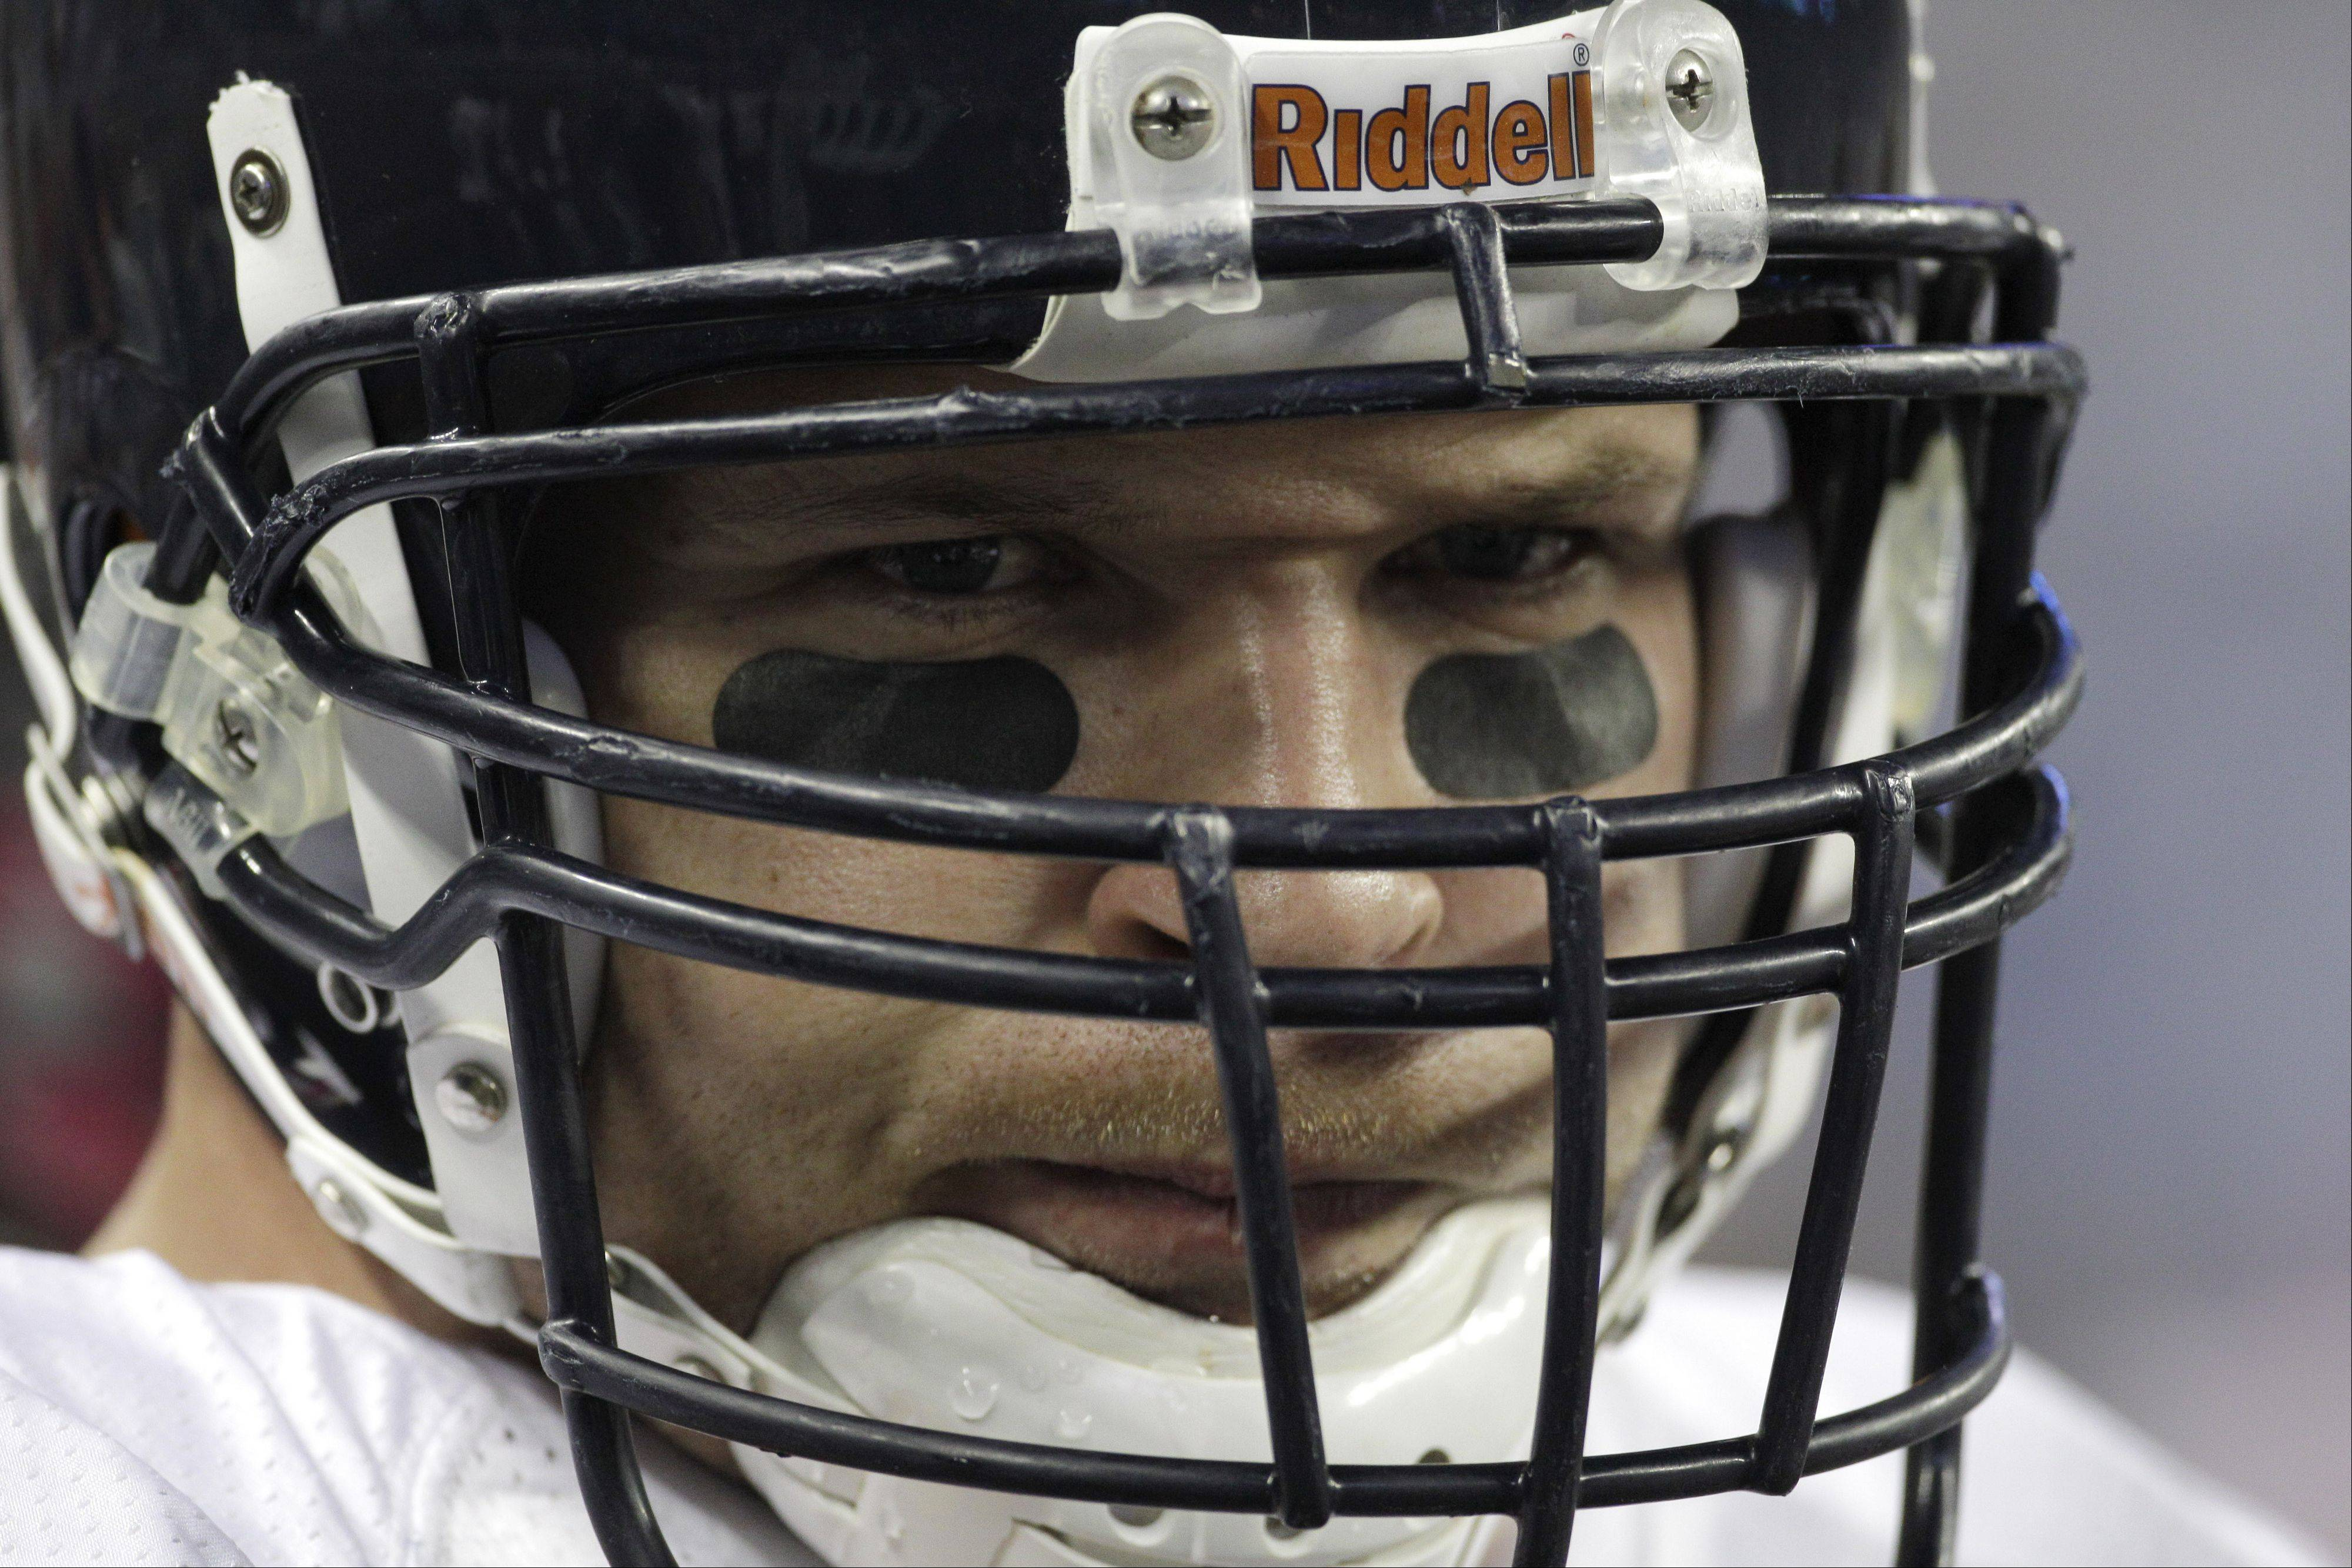 Chicago Bears middle linebacker Brian Urlacher (54) watches against the Detroit Lions in the first quarter of their NFL football game in Detroit, Monday, Oct. 10, 2011.